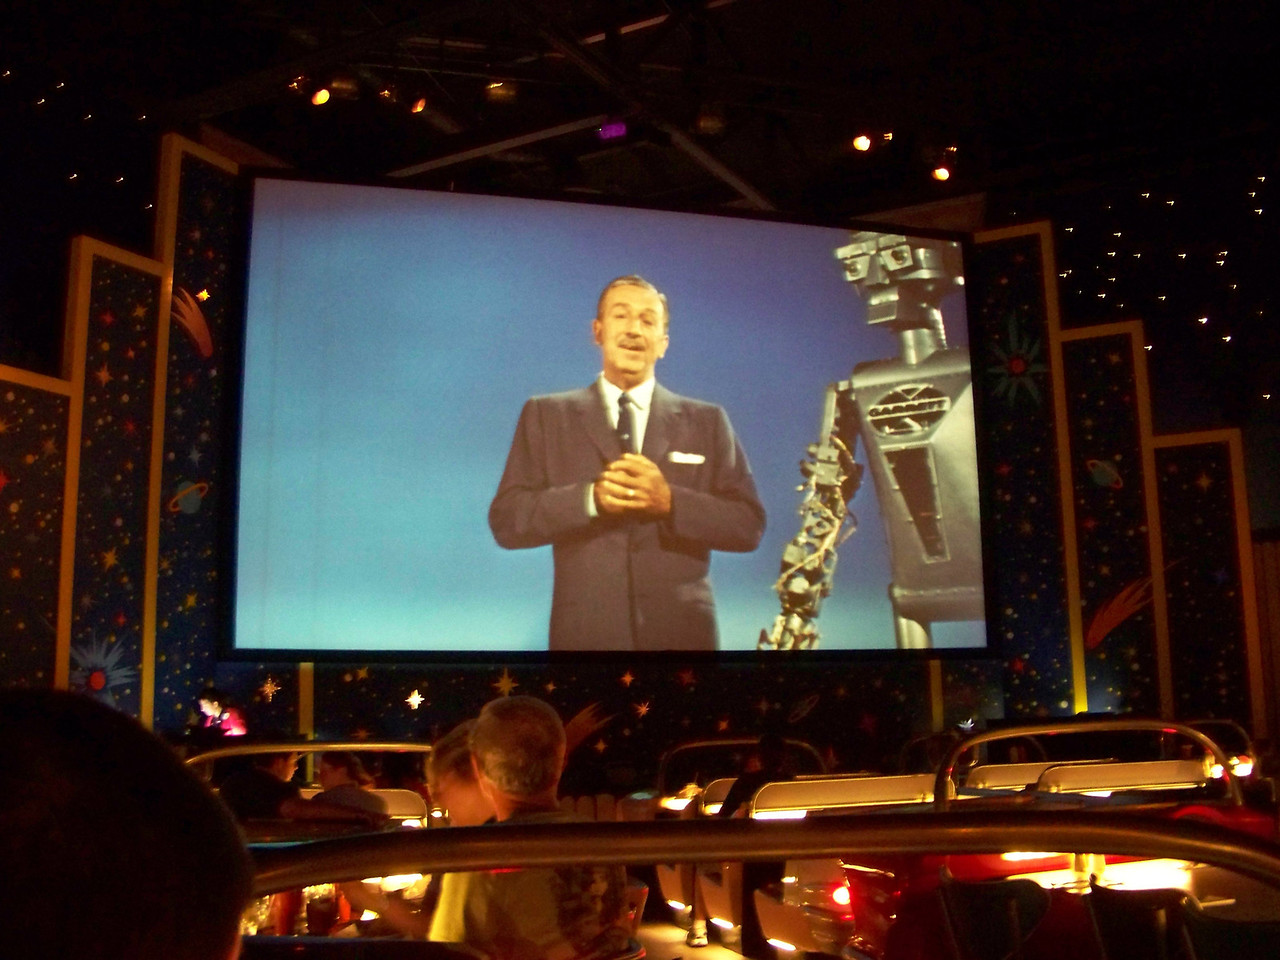 """The Sci-Fi Dine-In Theater's movie screen shows a loop of film clips from the 1950s.  There's lots of trailers for cheesy UFO and monster movies, clips from short subjects about sci-fi things (""""By 1985, everyone will have their own jetpack!""""), and even some Disney clips, such as the one seen here with Walt talking about robots.  It's very entertaining, but we wished the loop was a bit longer, as we saw it play all the way through and then repeat about half of it while we were there.  Overall, this is a really fun restaurant, and I had a great time there!<br /> [Disney's Hollywood Studios]"""